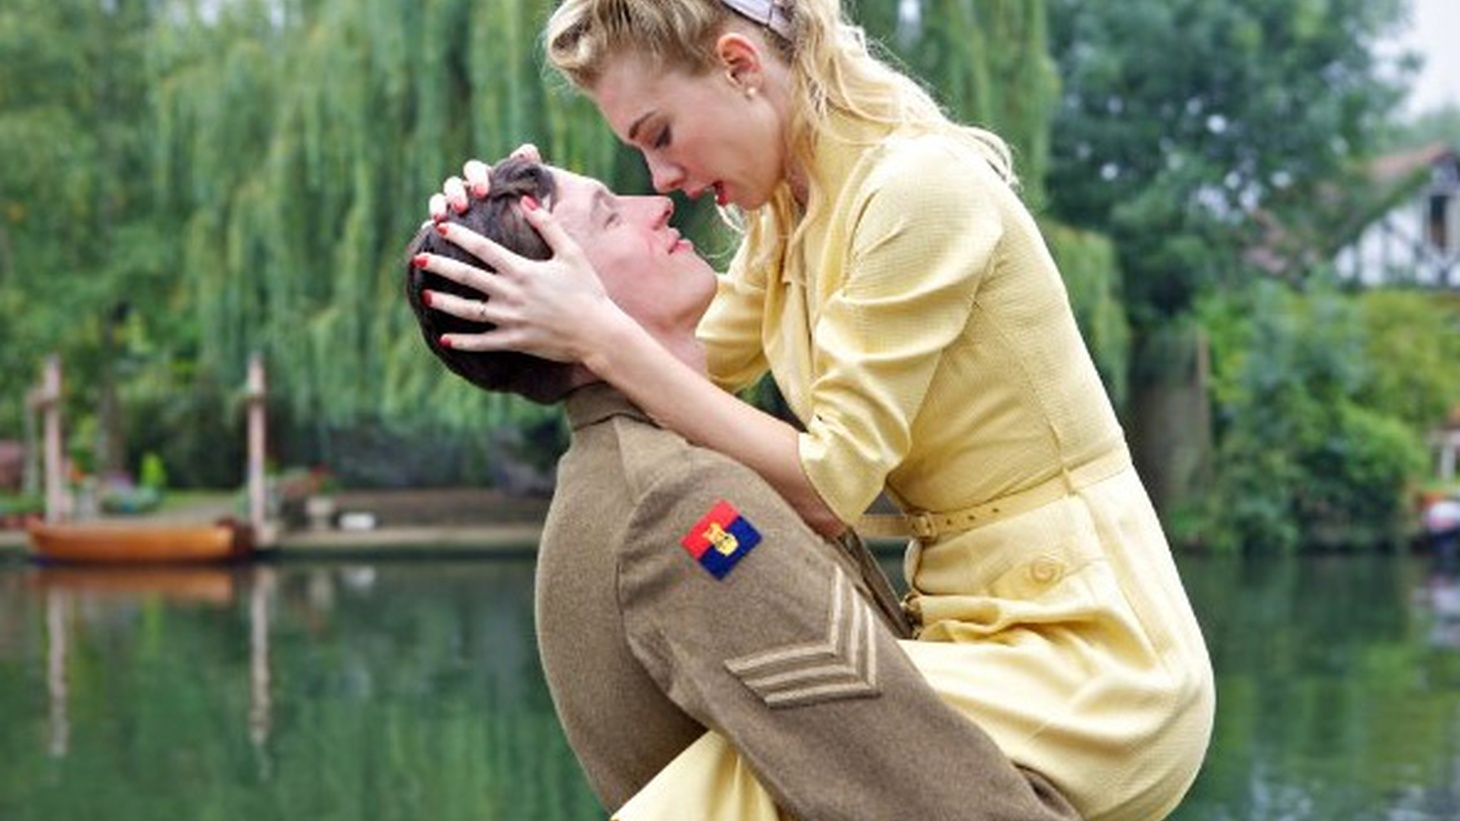 Queen and Country, the sequel to Hope and Glory that took John Boorman almost three decades to make, is worth the wait.